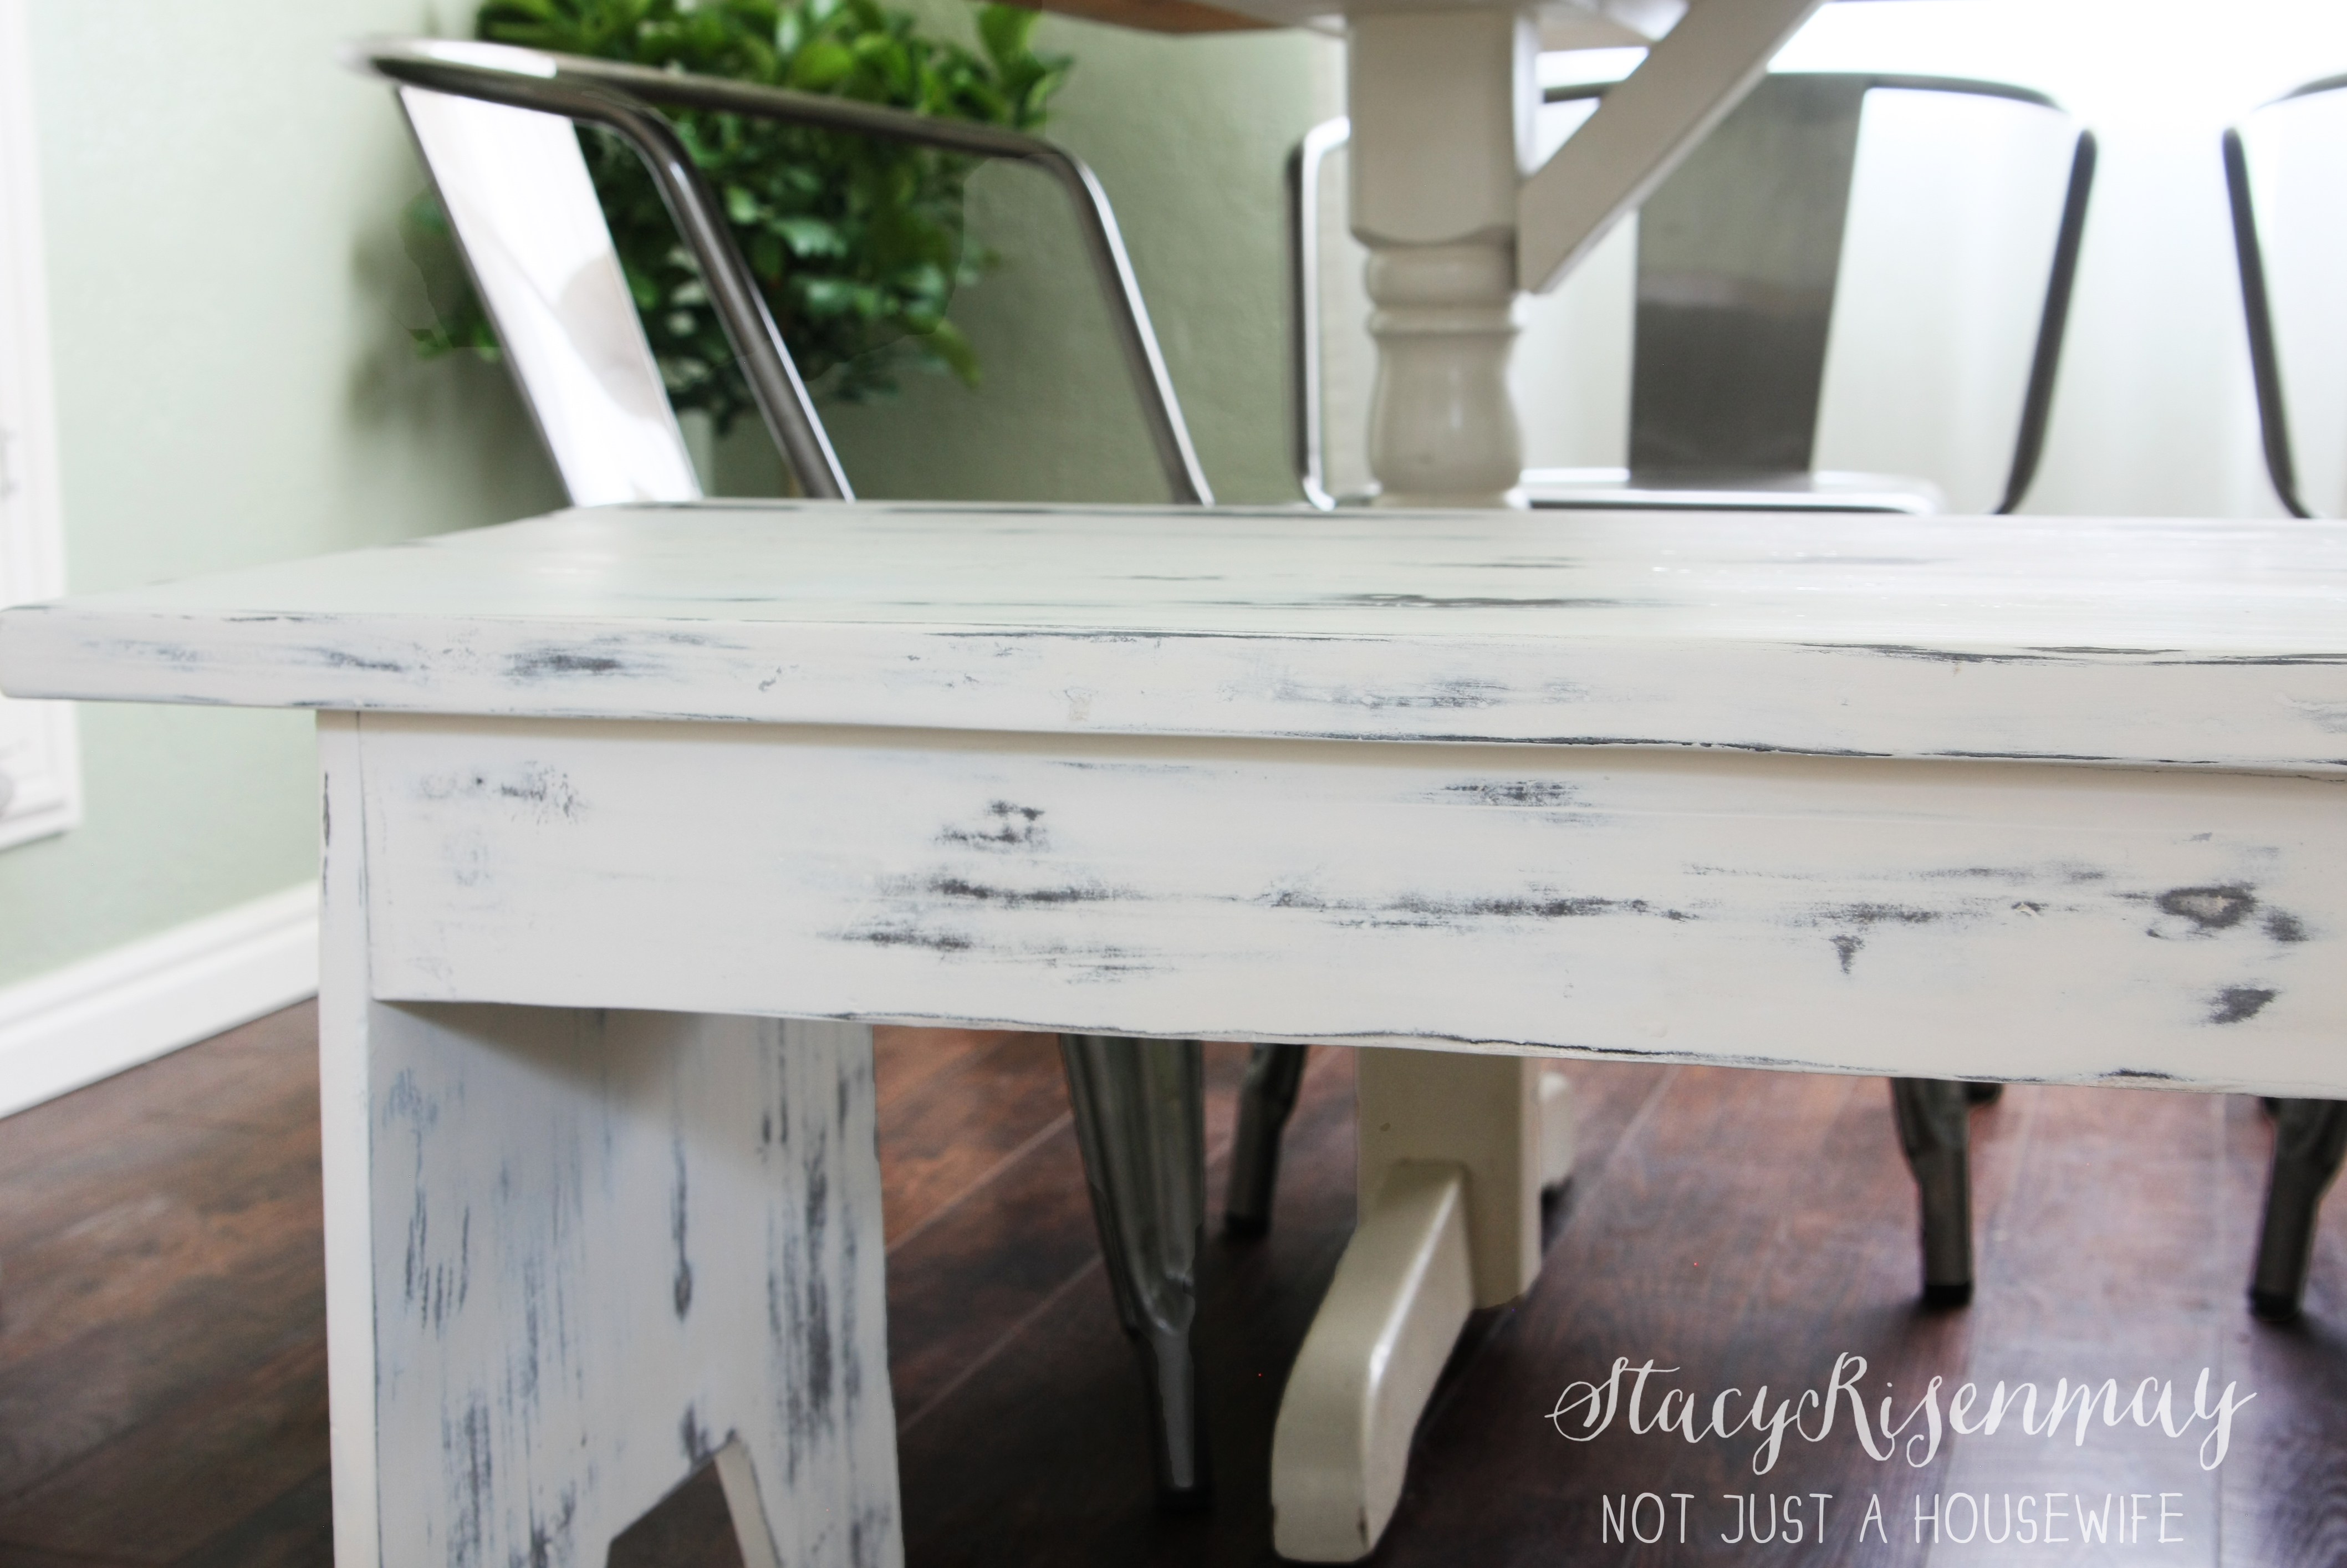 White Distressed Bench Not Just A Housewife